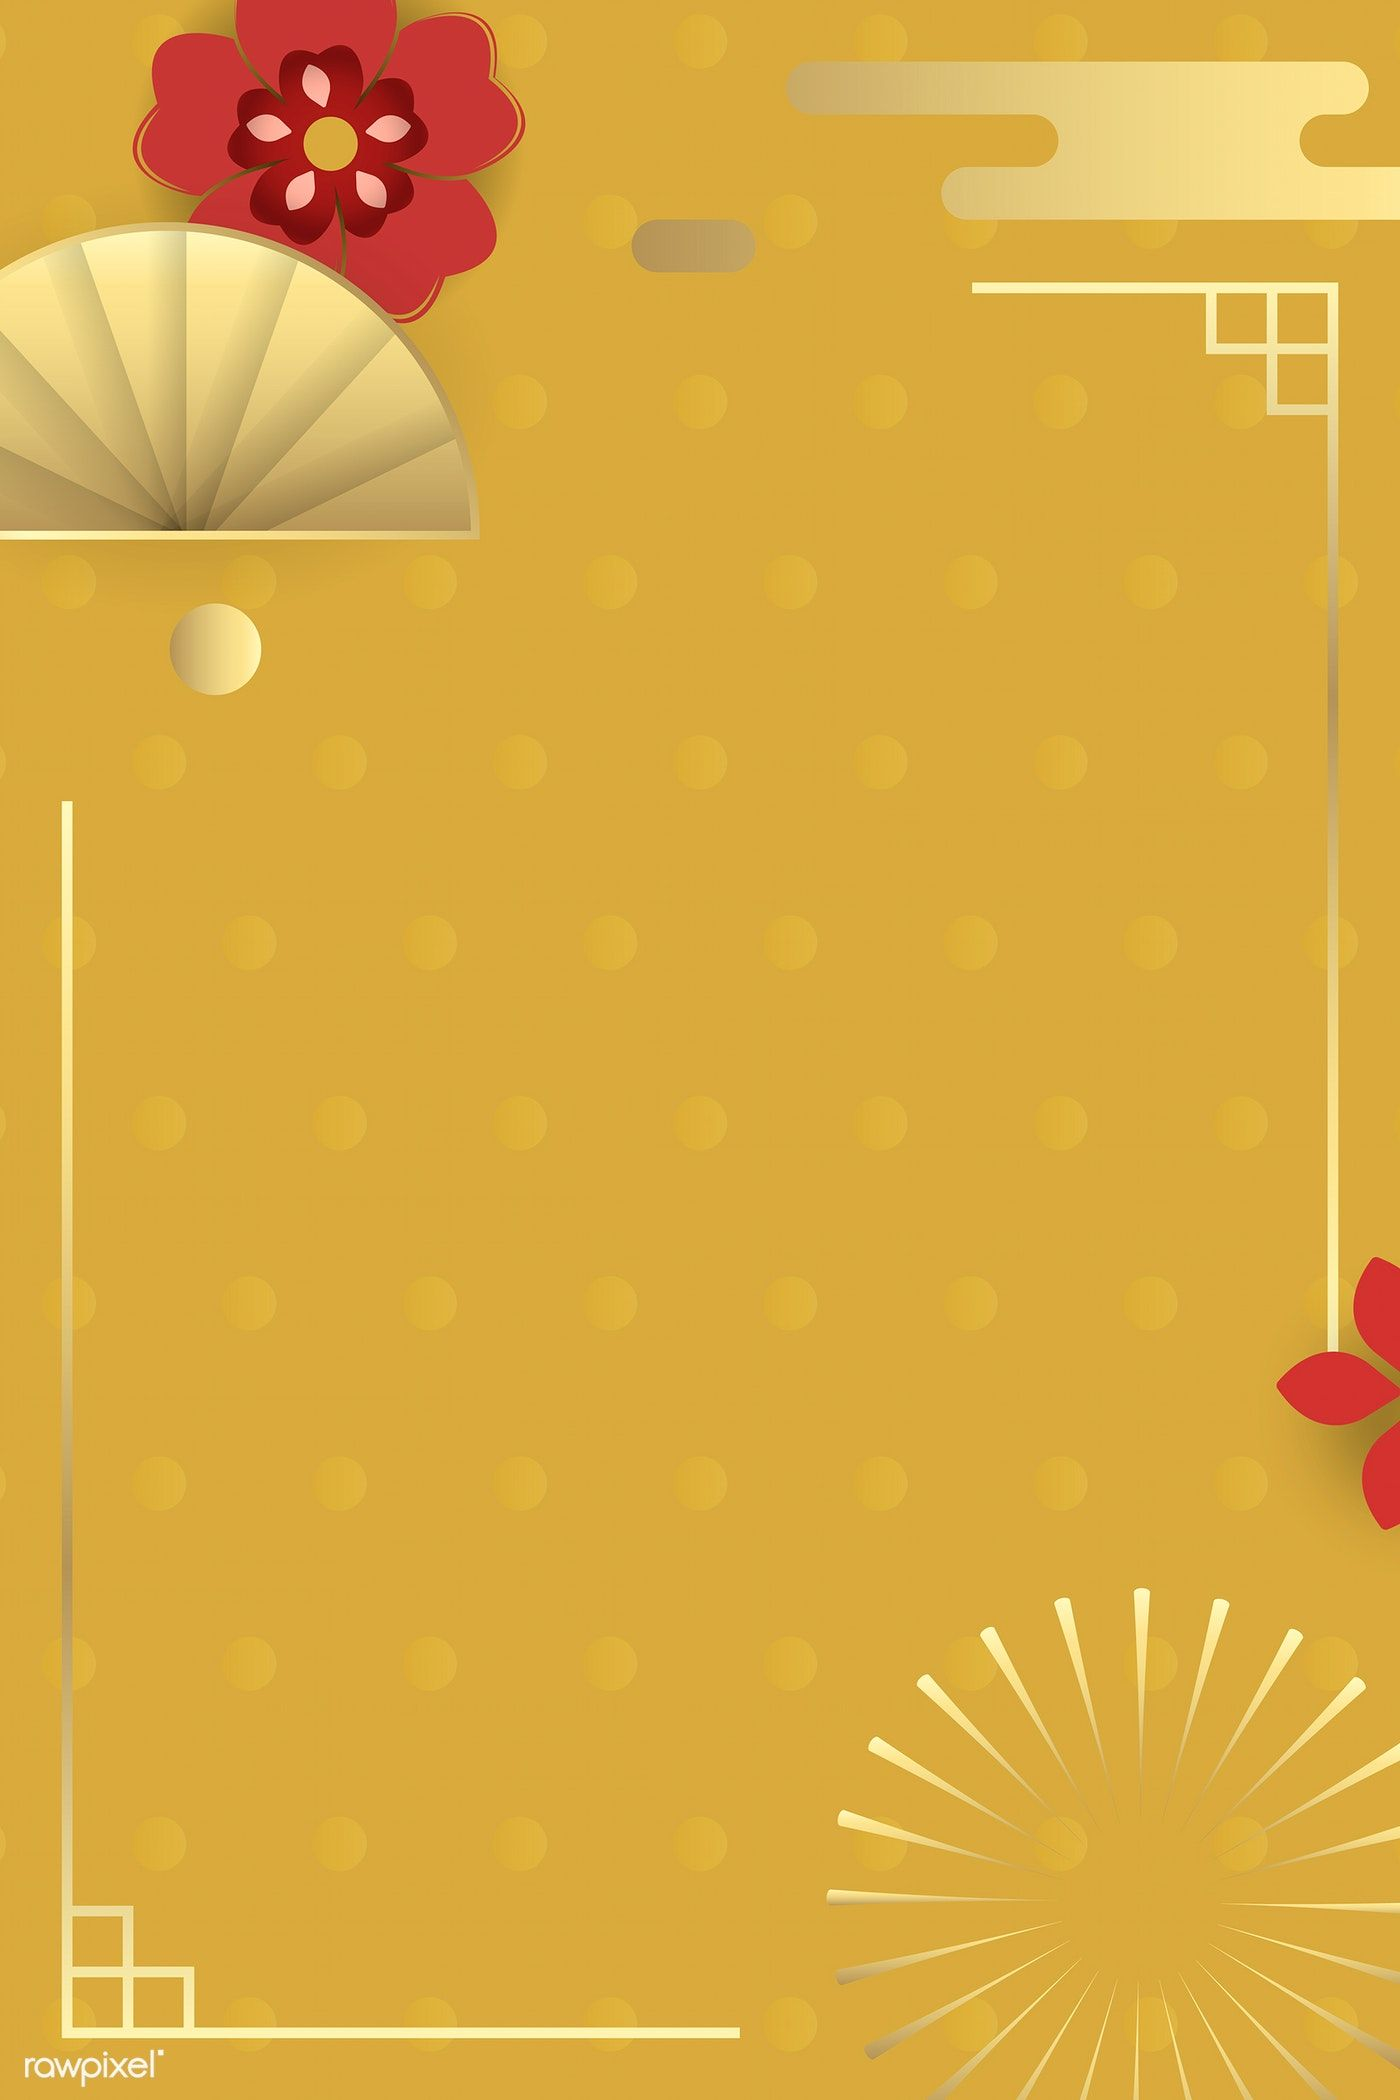 download premium vector of happy chinese new year 2020 background vector in 2020 happy chinese new year chinese new year 2020 chinese new year greeting chinese new year 2020